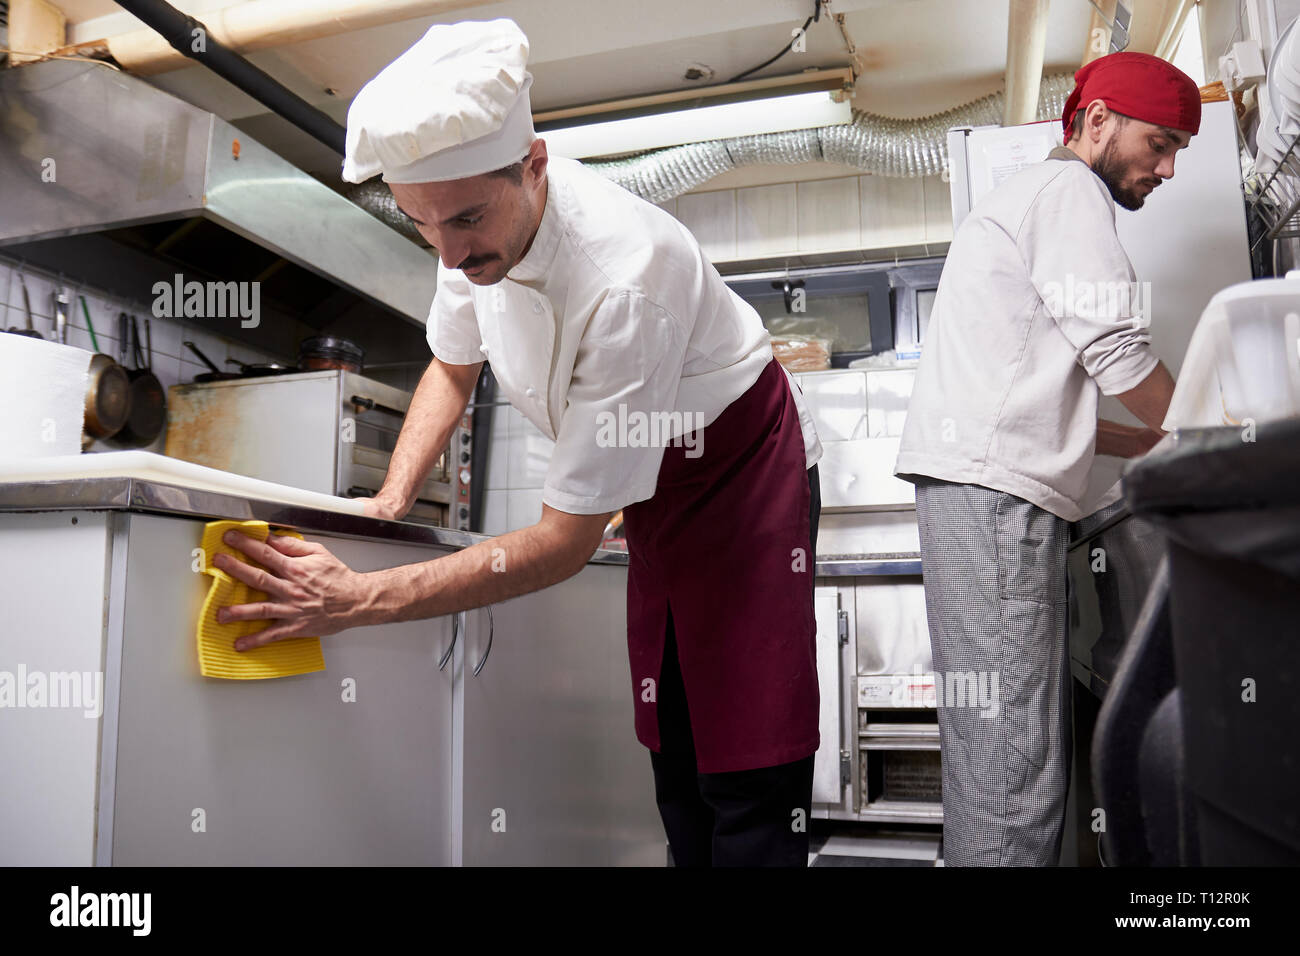 Two People Young Chef In Kitchen Cleaning Cabinets After Closing Restaurant Stock Photo Alamy